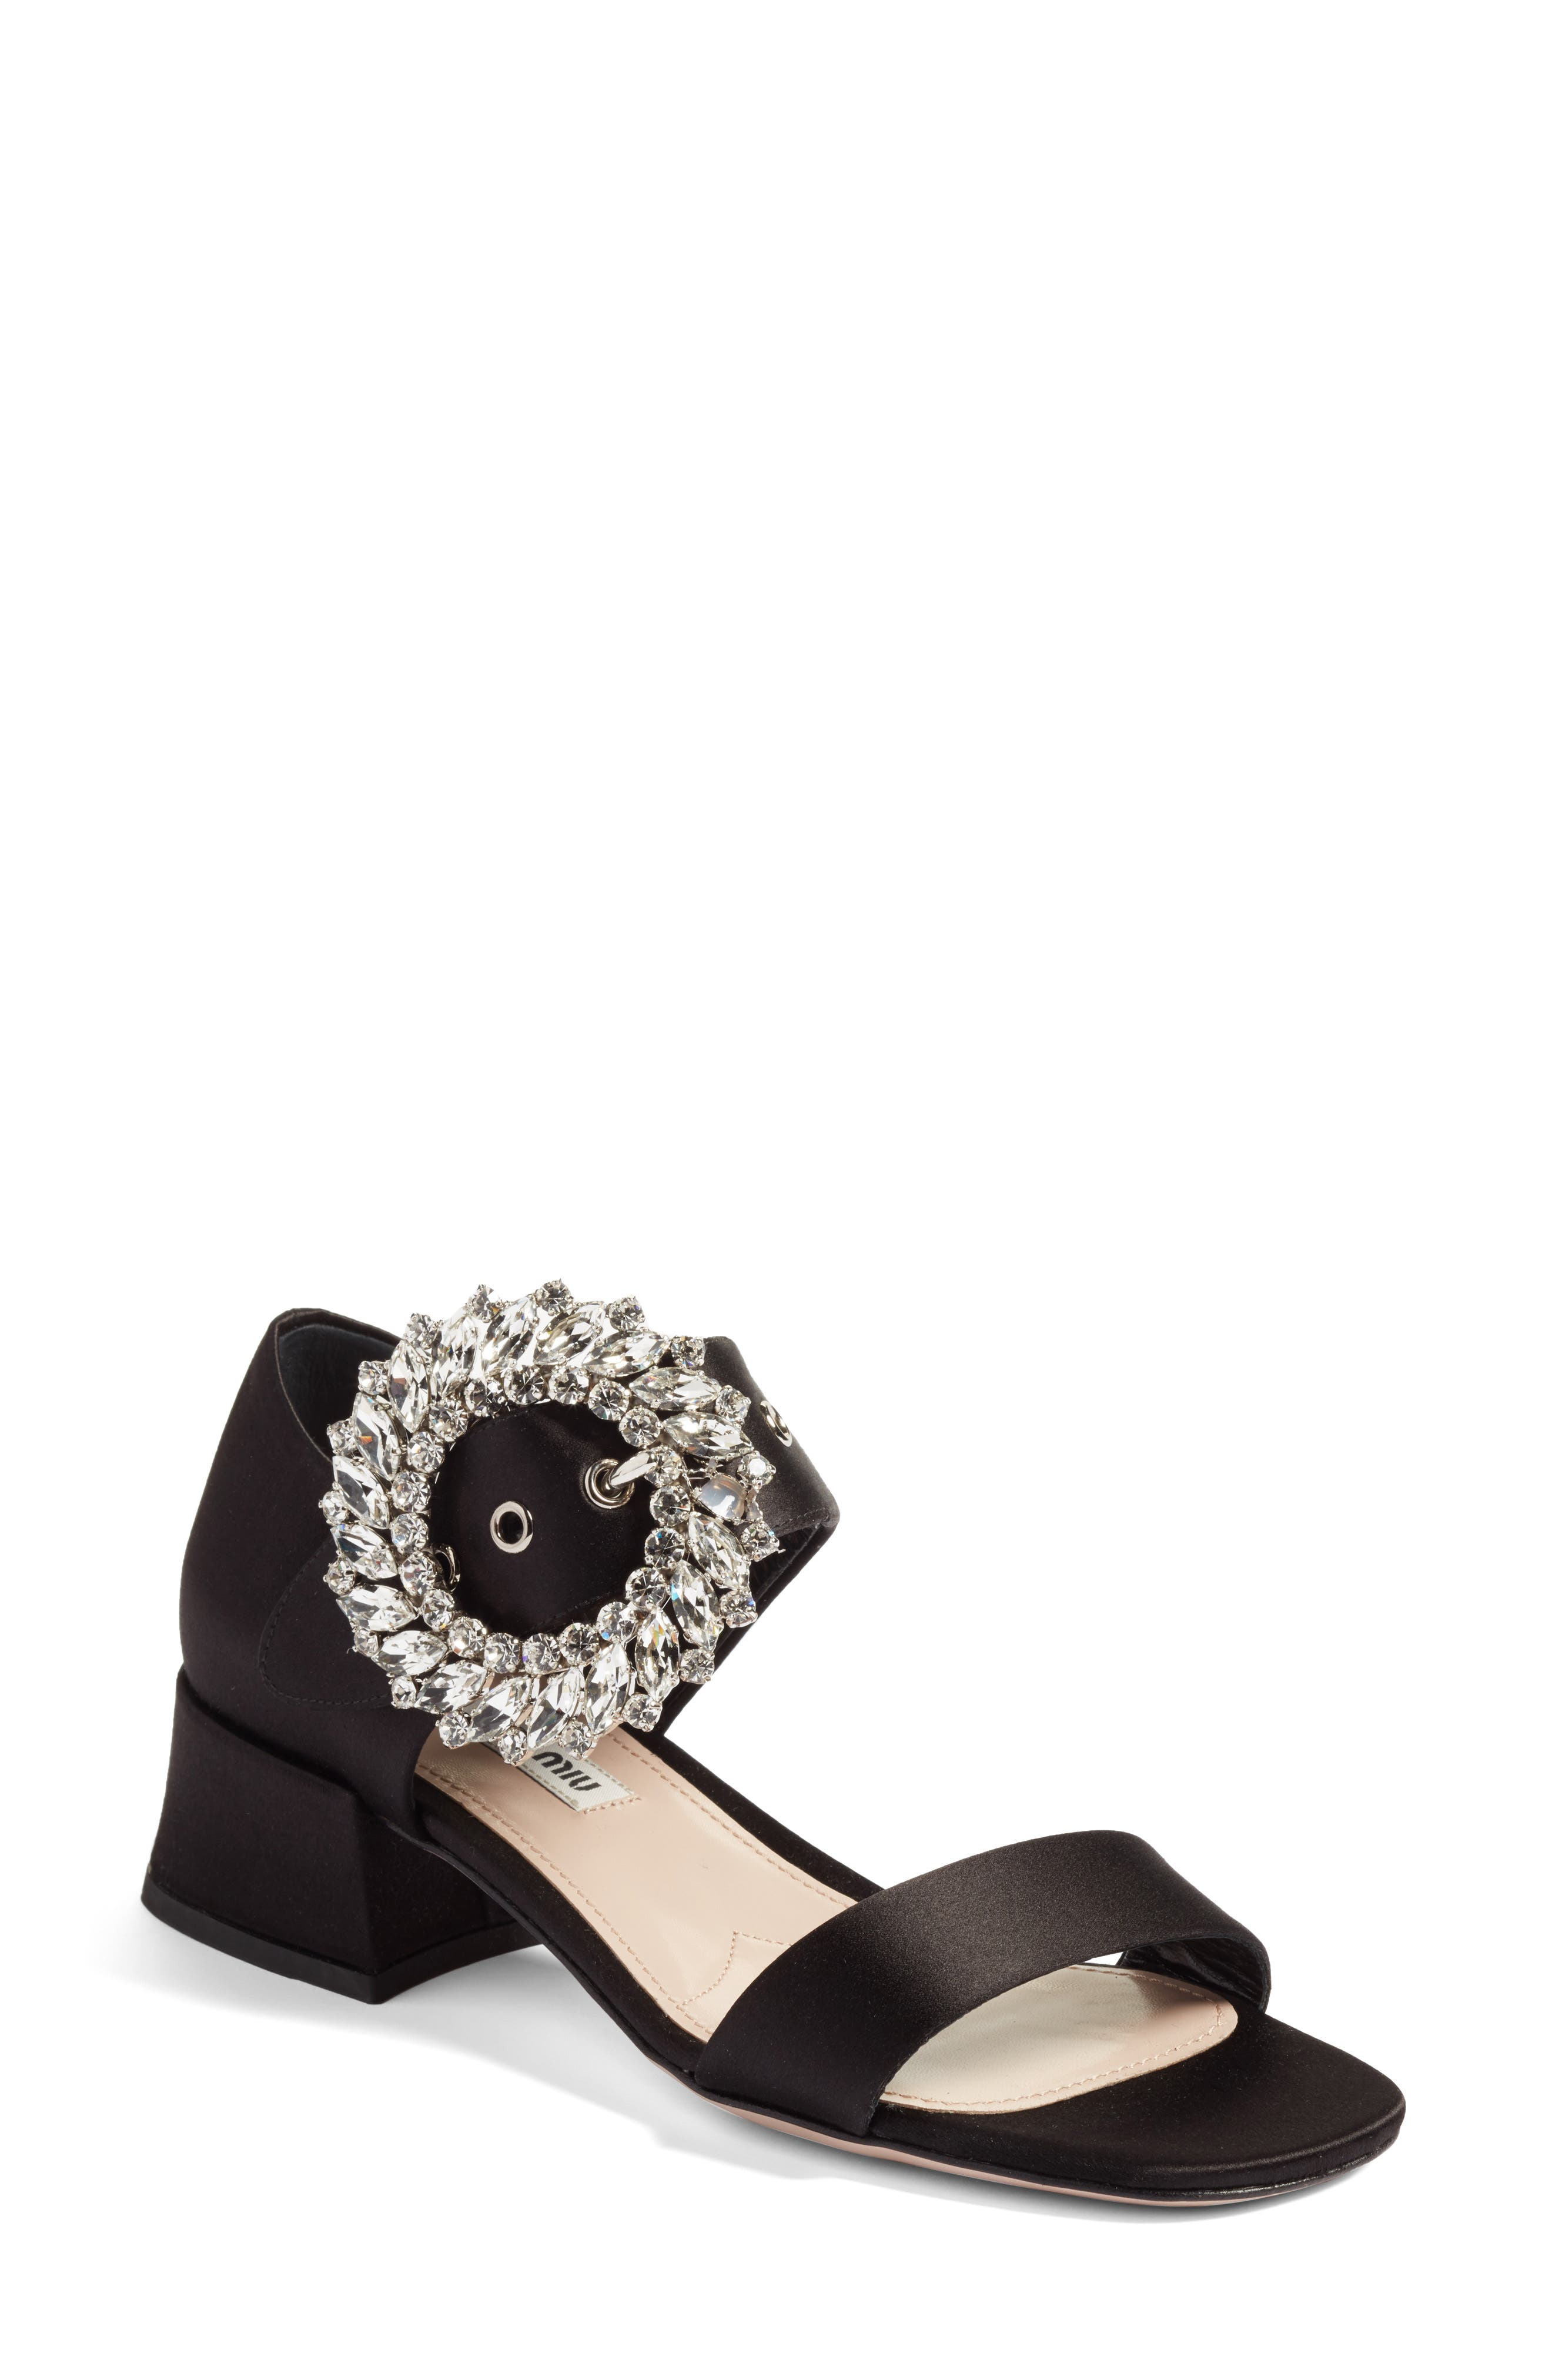 Alternate Image 1 Selected - Miu Miu Crystal Buckle Mary Jane Sandal (Women)